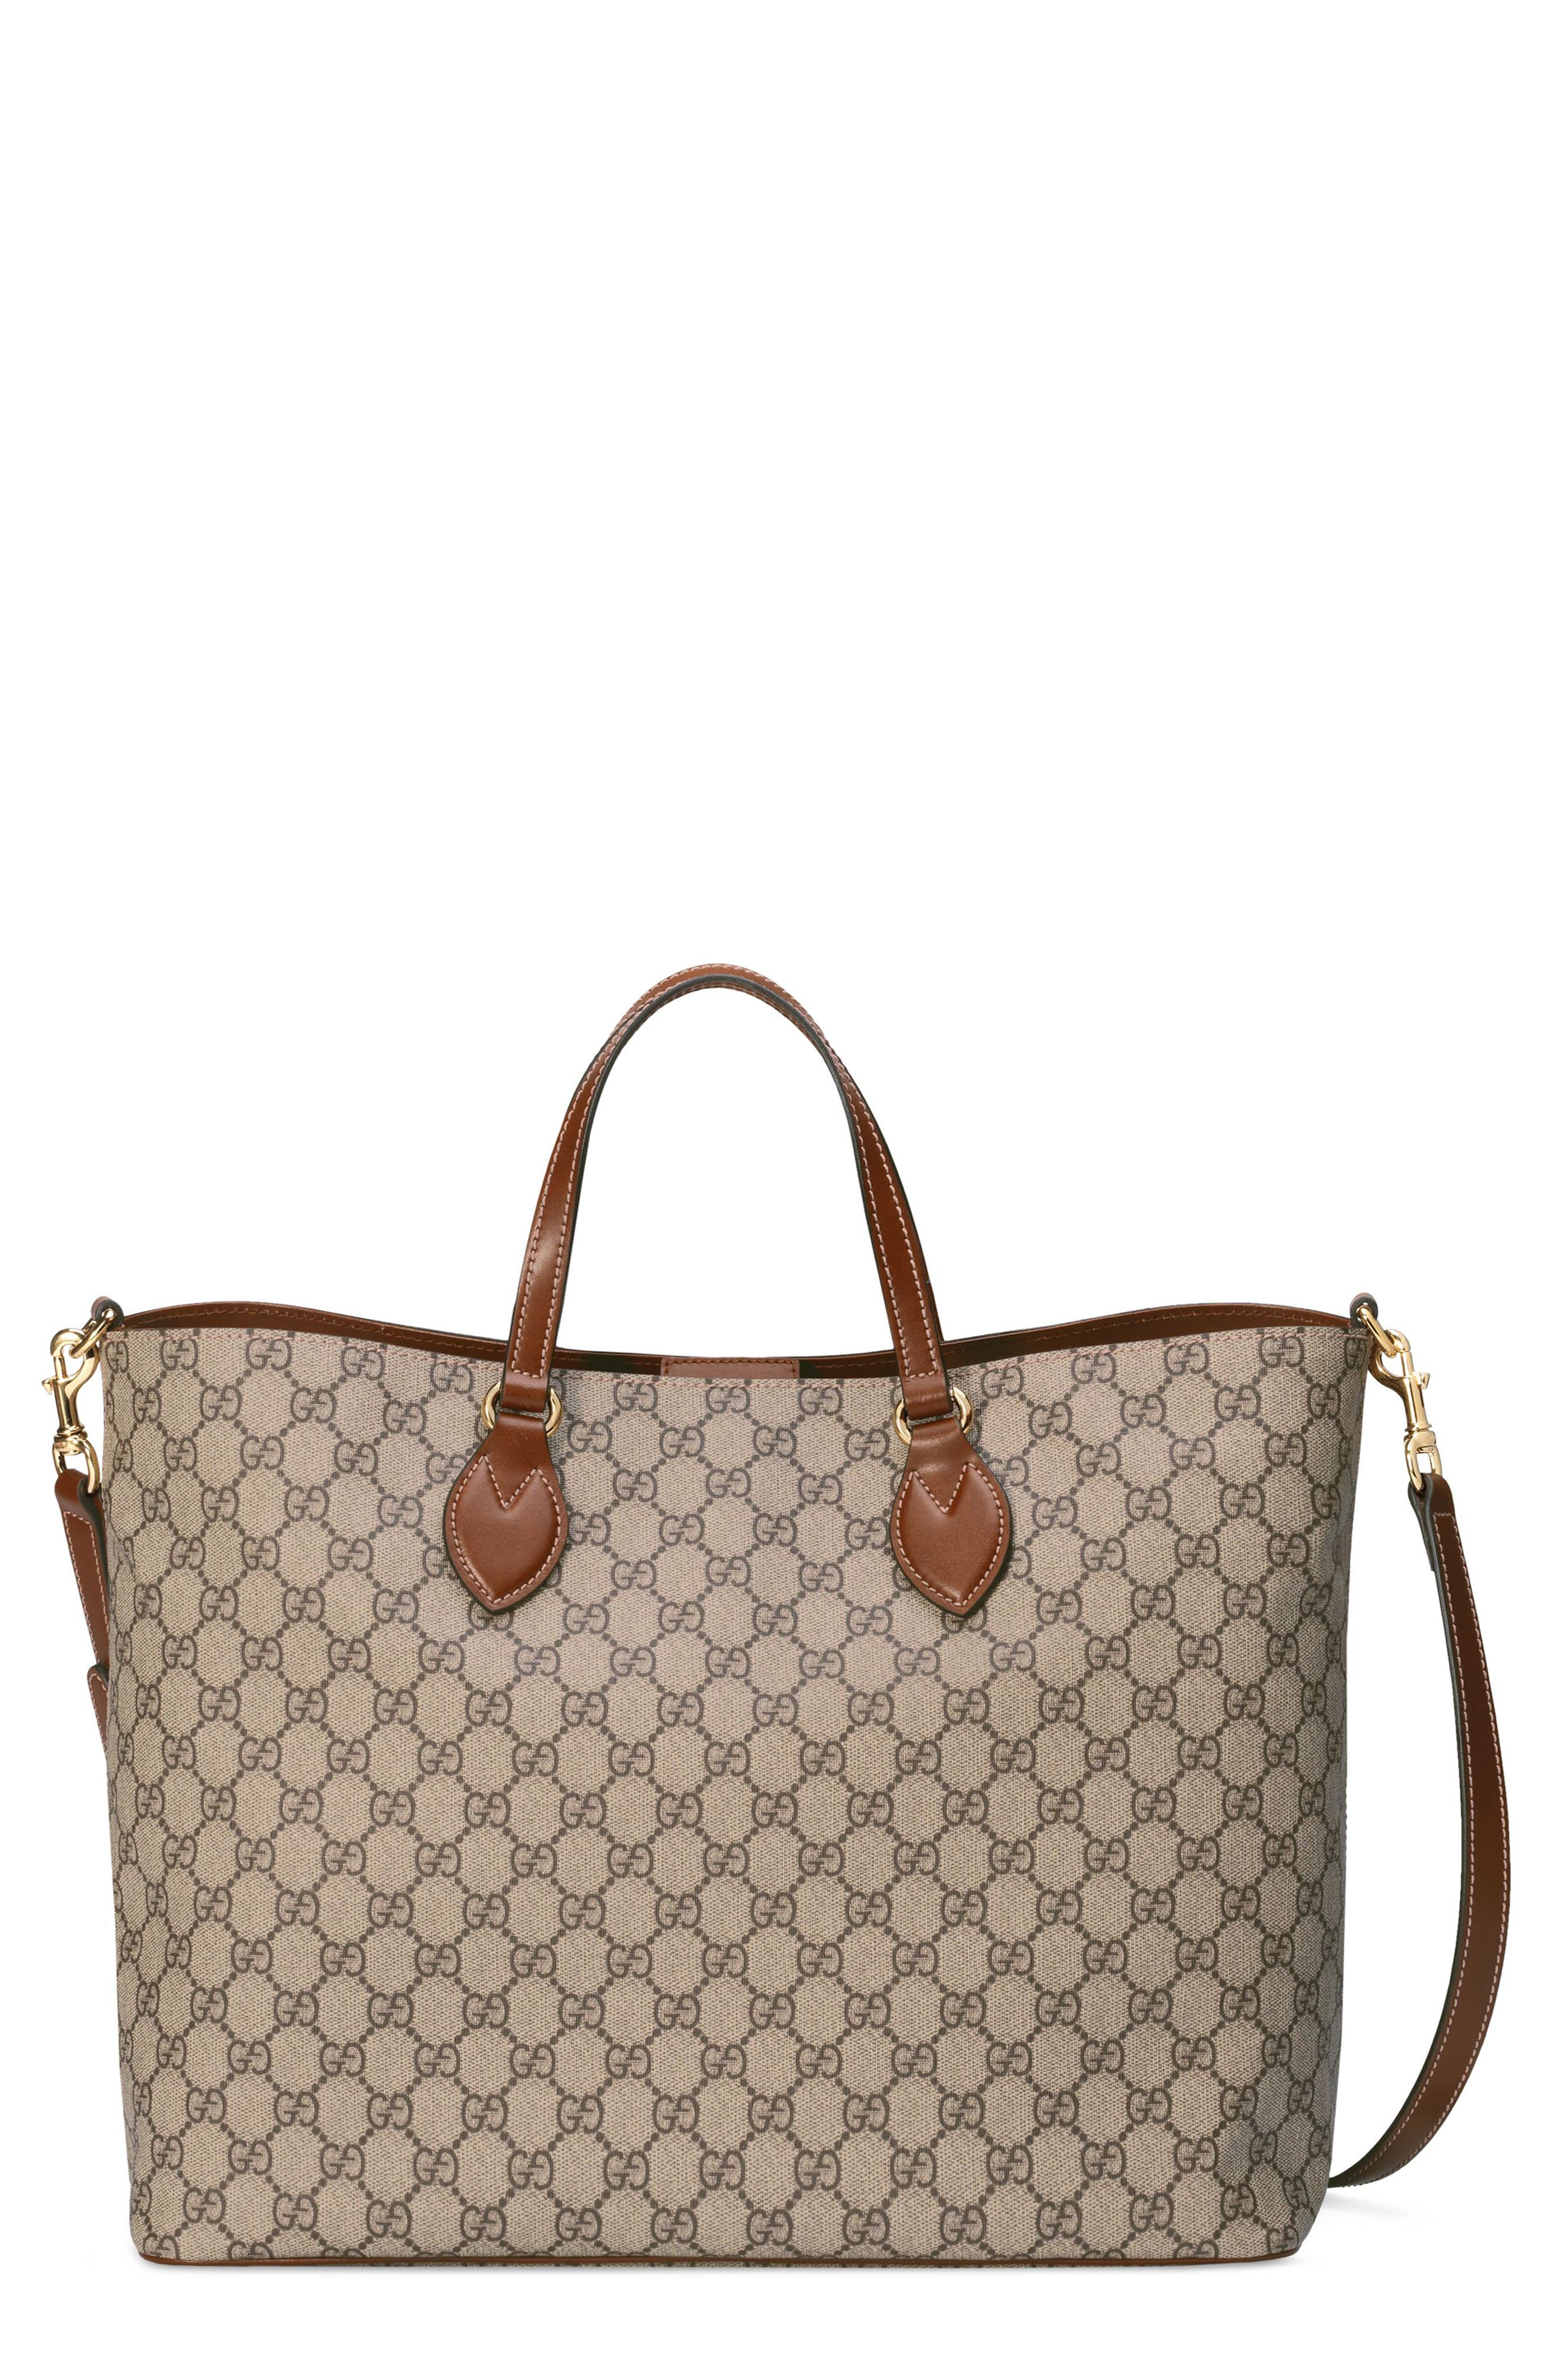 GG Supreme Soft Canvas Tote,                             Main thumbnail 1, color,                             283